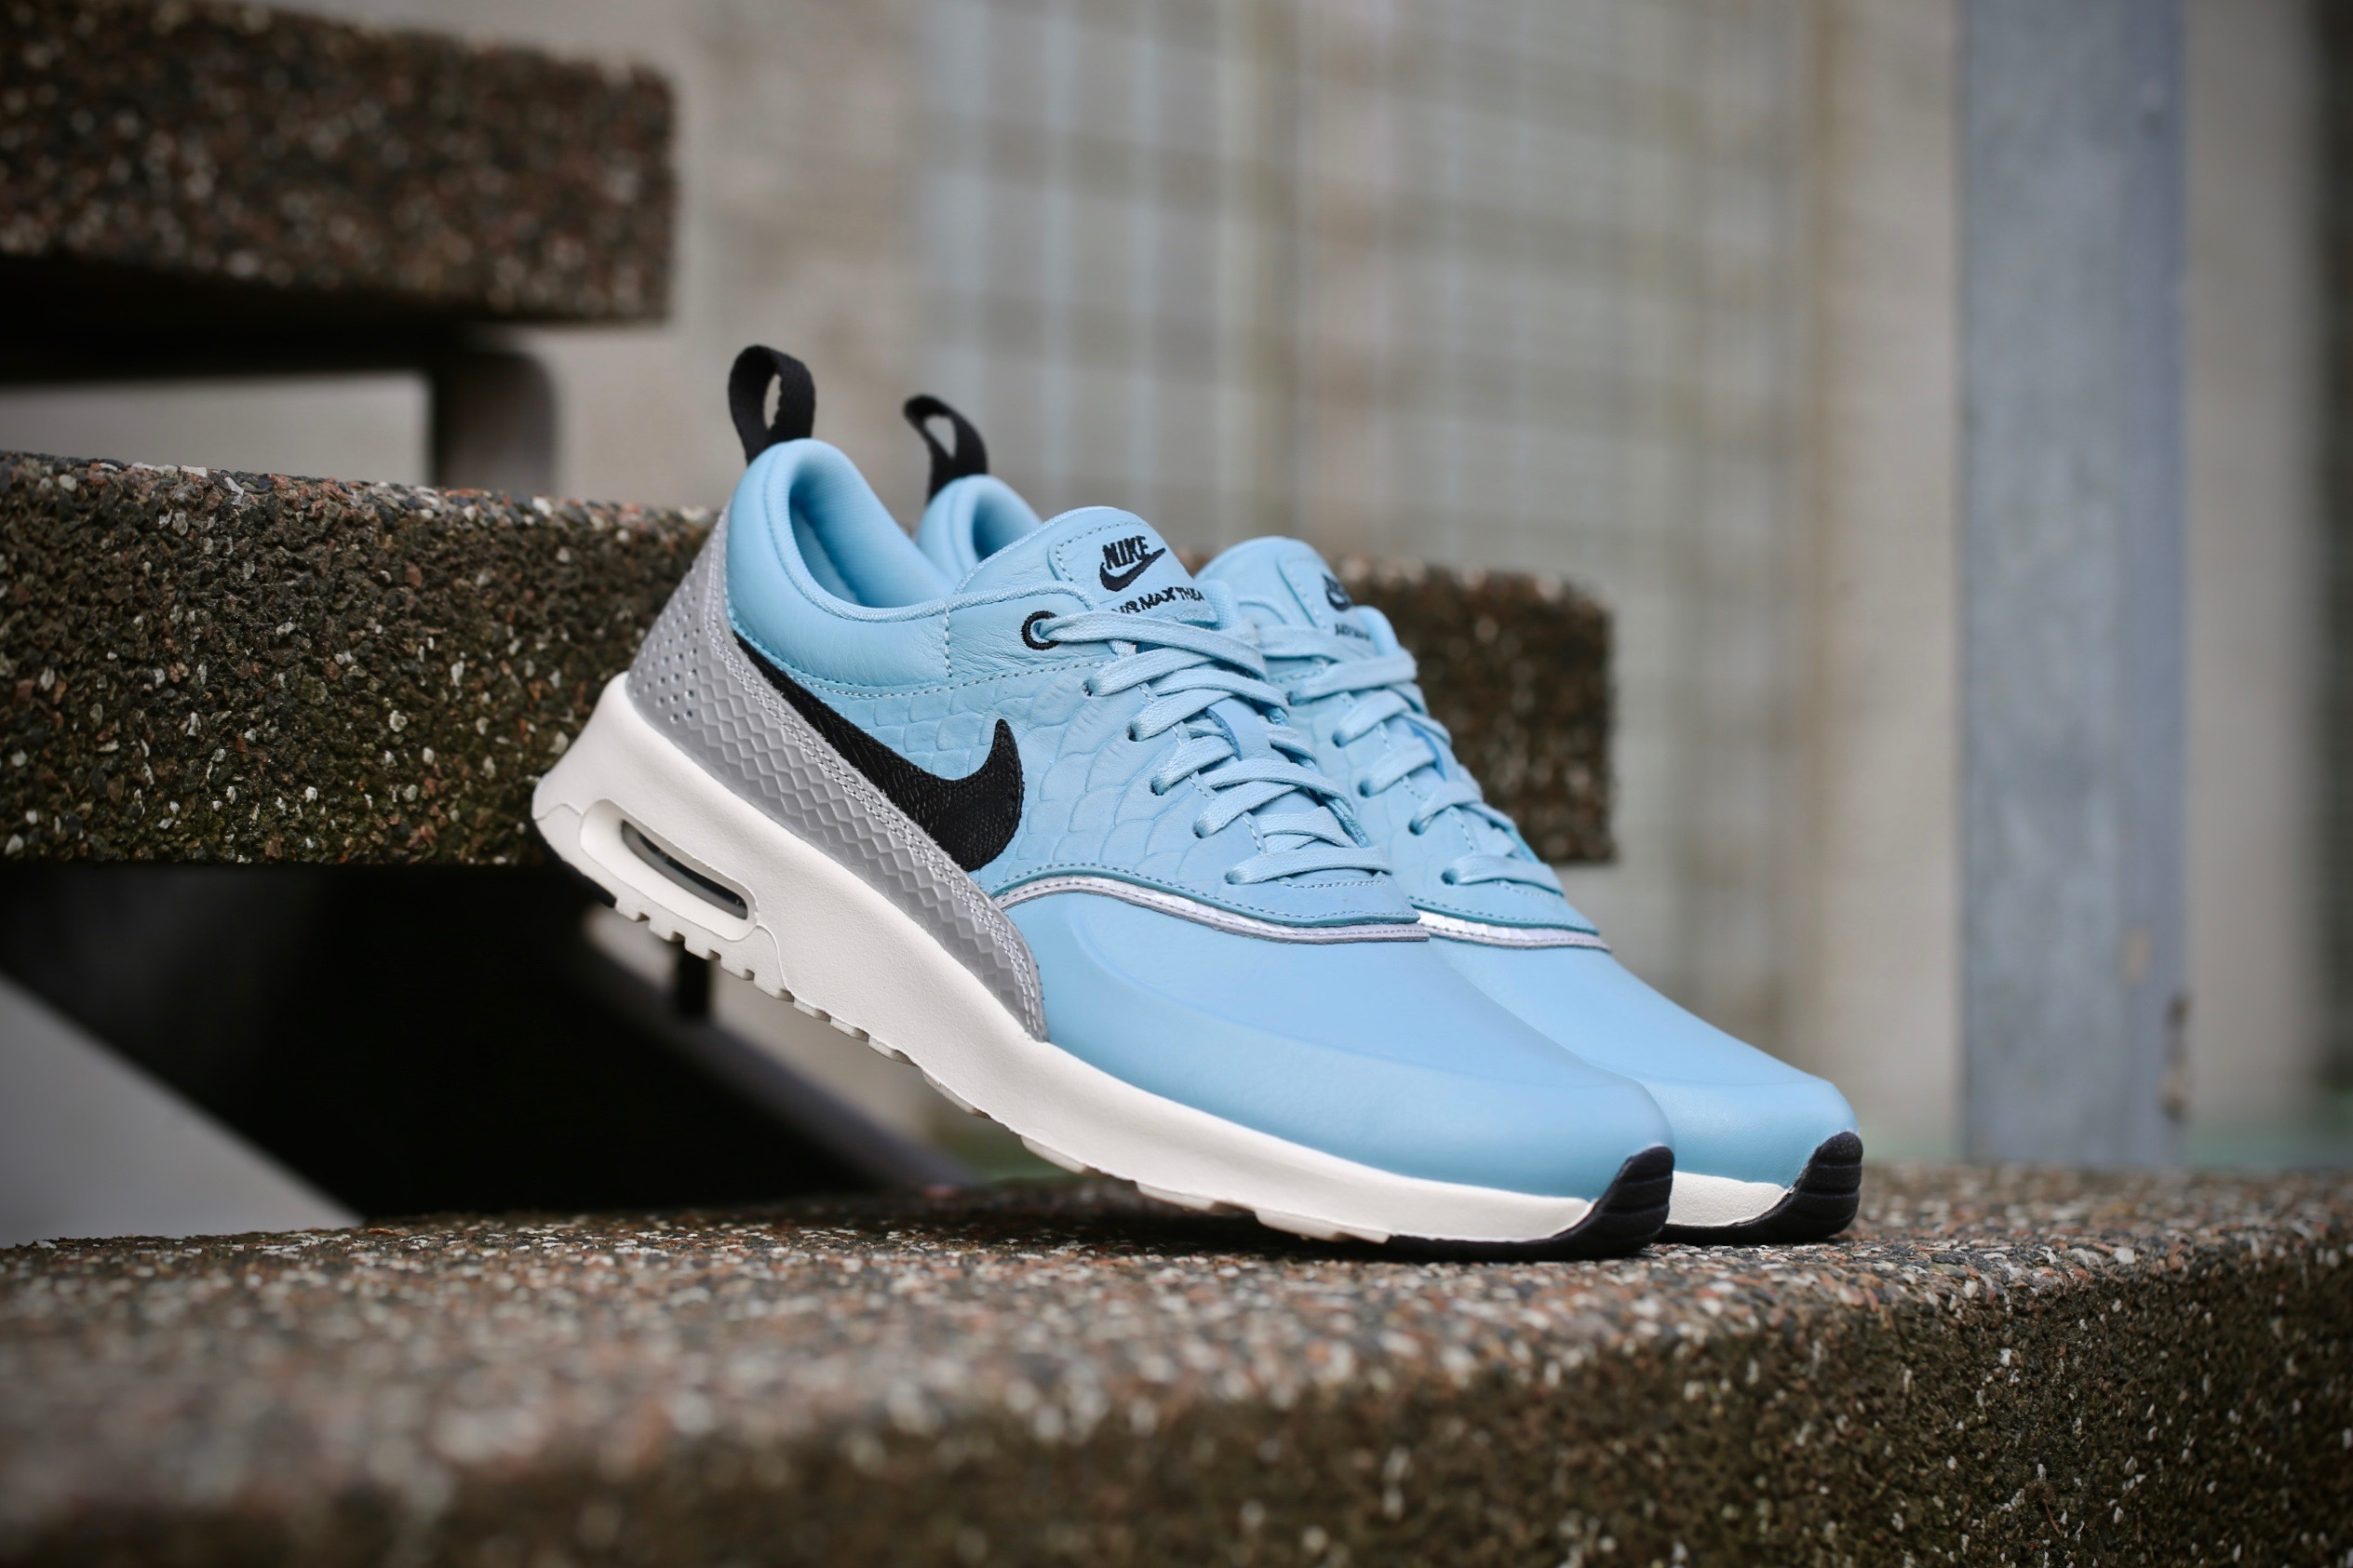 pretty cool various design differently Nike Wmns Air Max Thea LX - Mica Blue / Metallic Silver / Ivory / Black